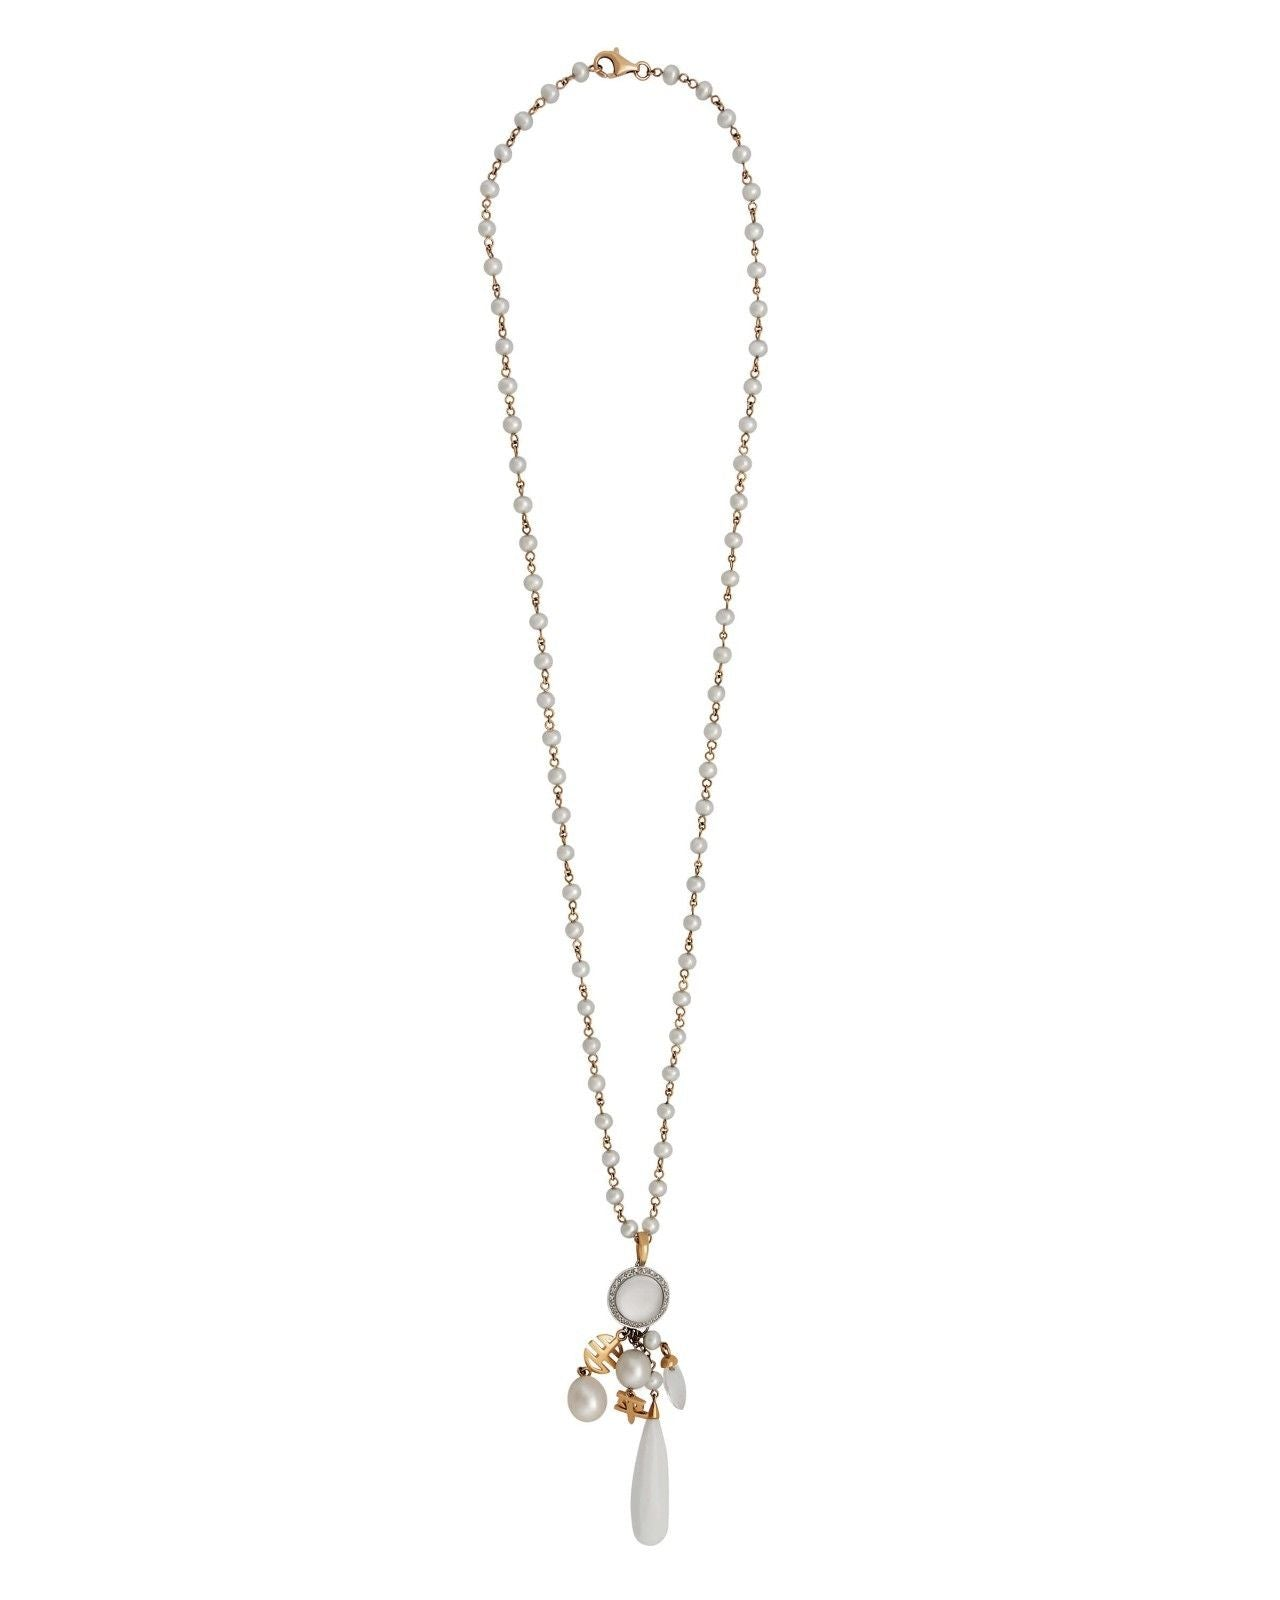 Mimi Milano Necklace In 18K Rose Gold, Agate, Rock Crystal, Pearls C165RJ1A1B